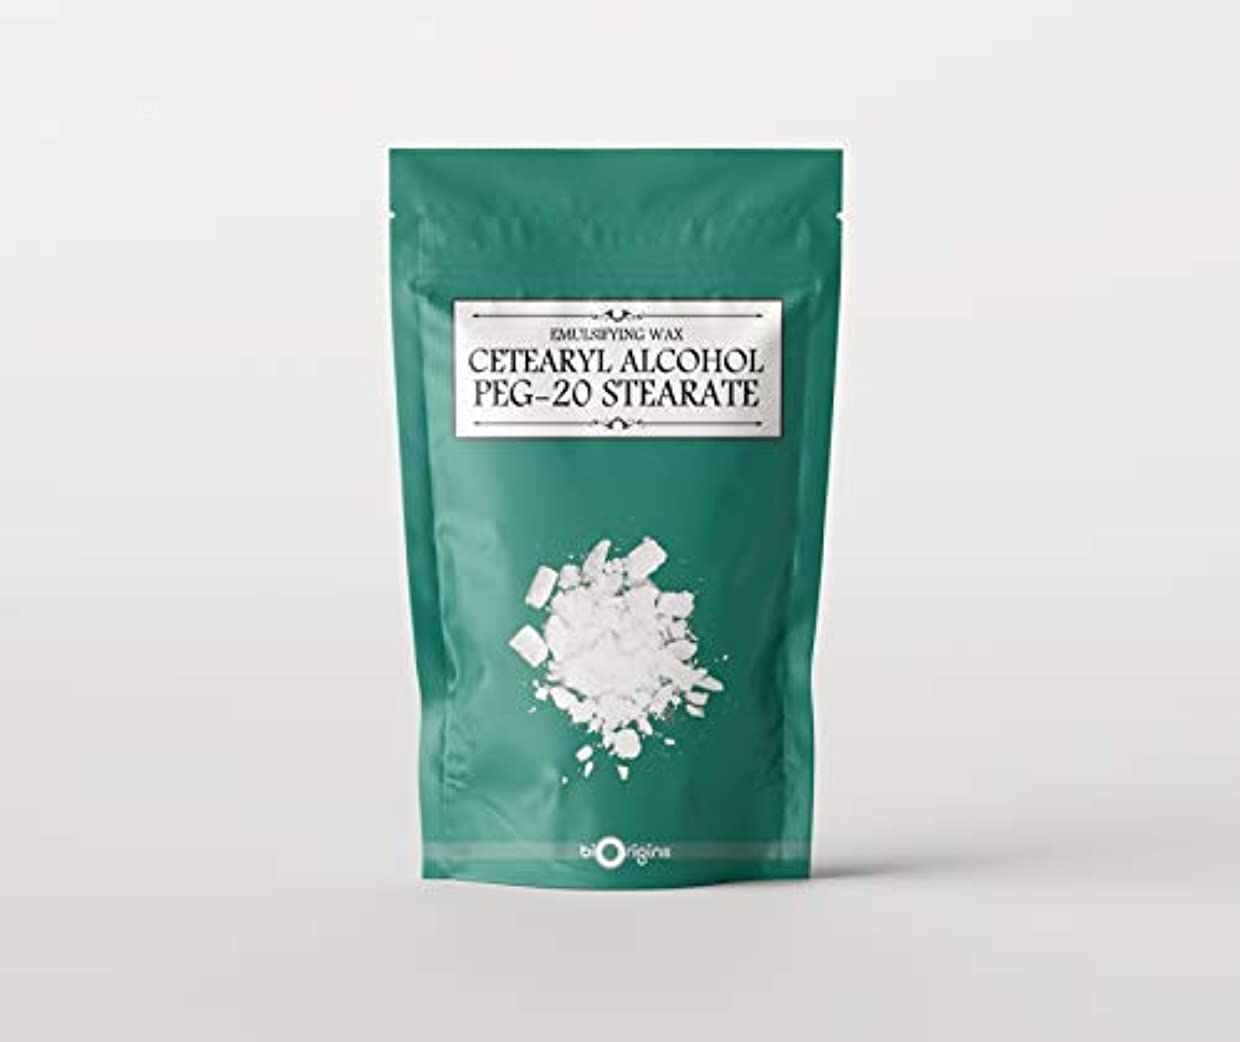 シーボードペストリー幾分Emulsifying Wax (Cetearyl Alcohol/PEG-20 Stearate) 500g